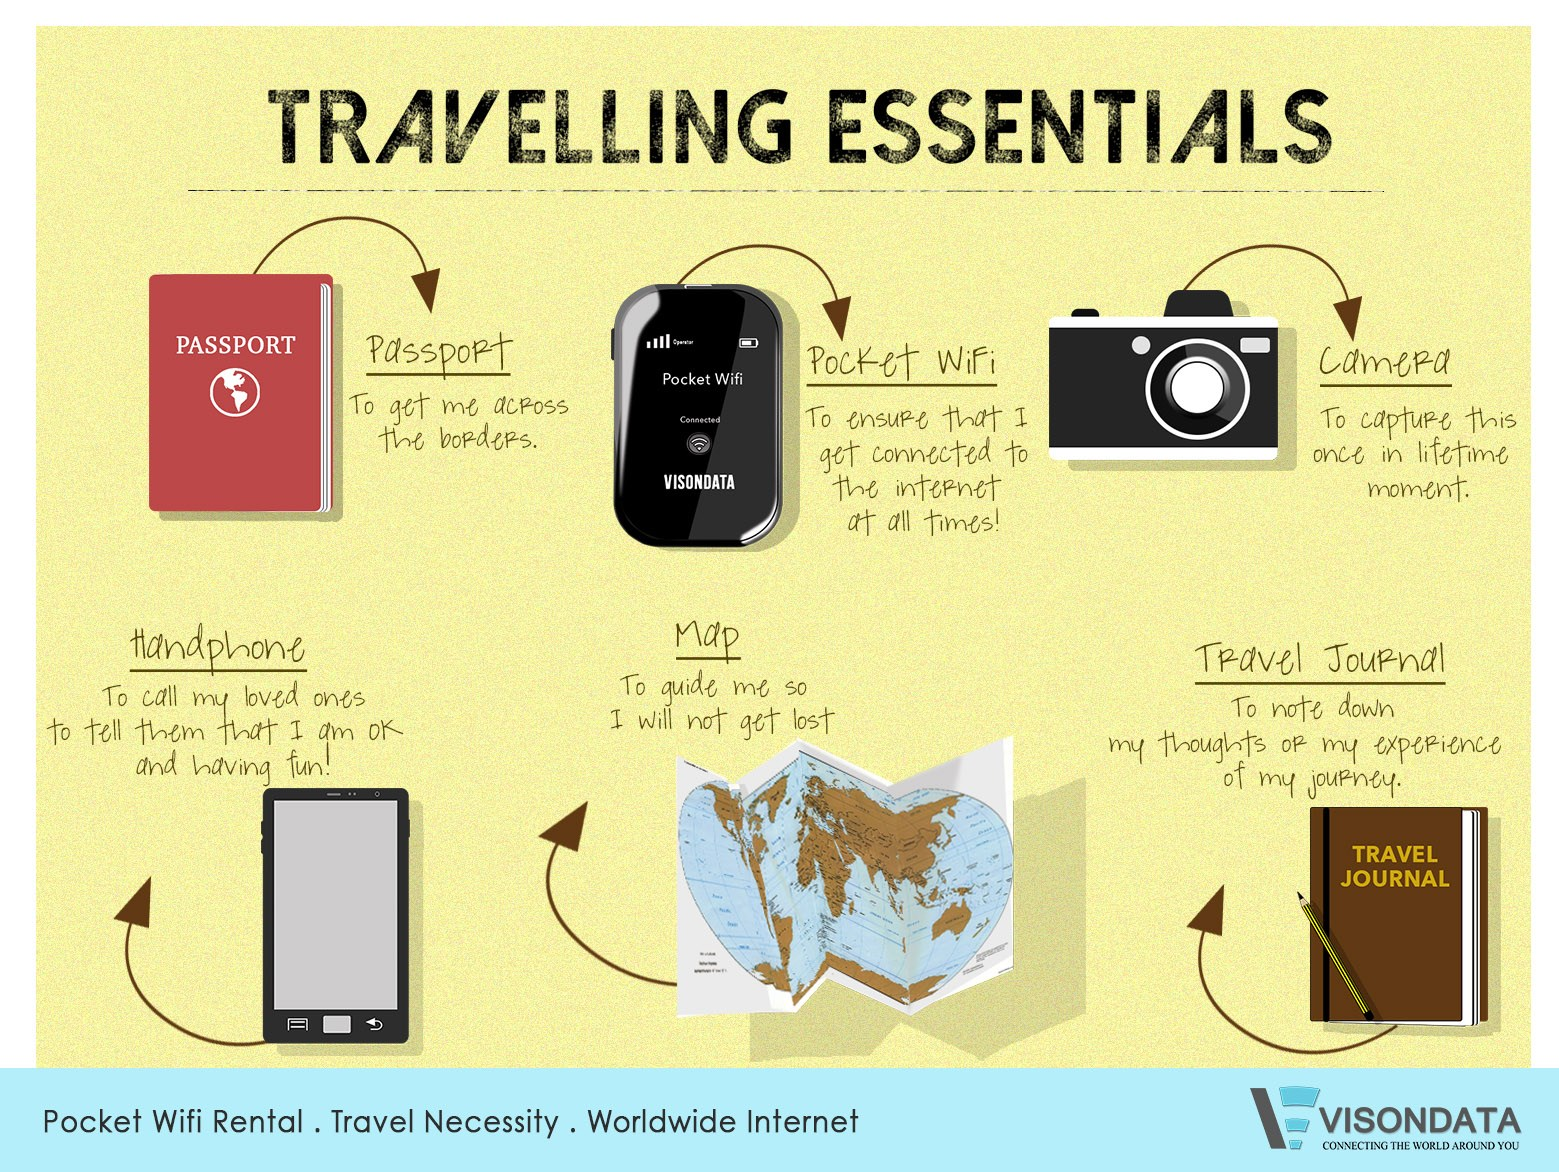 visondata travel essentials imm jurong east rental wifi